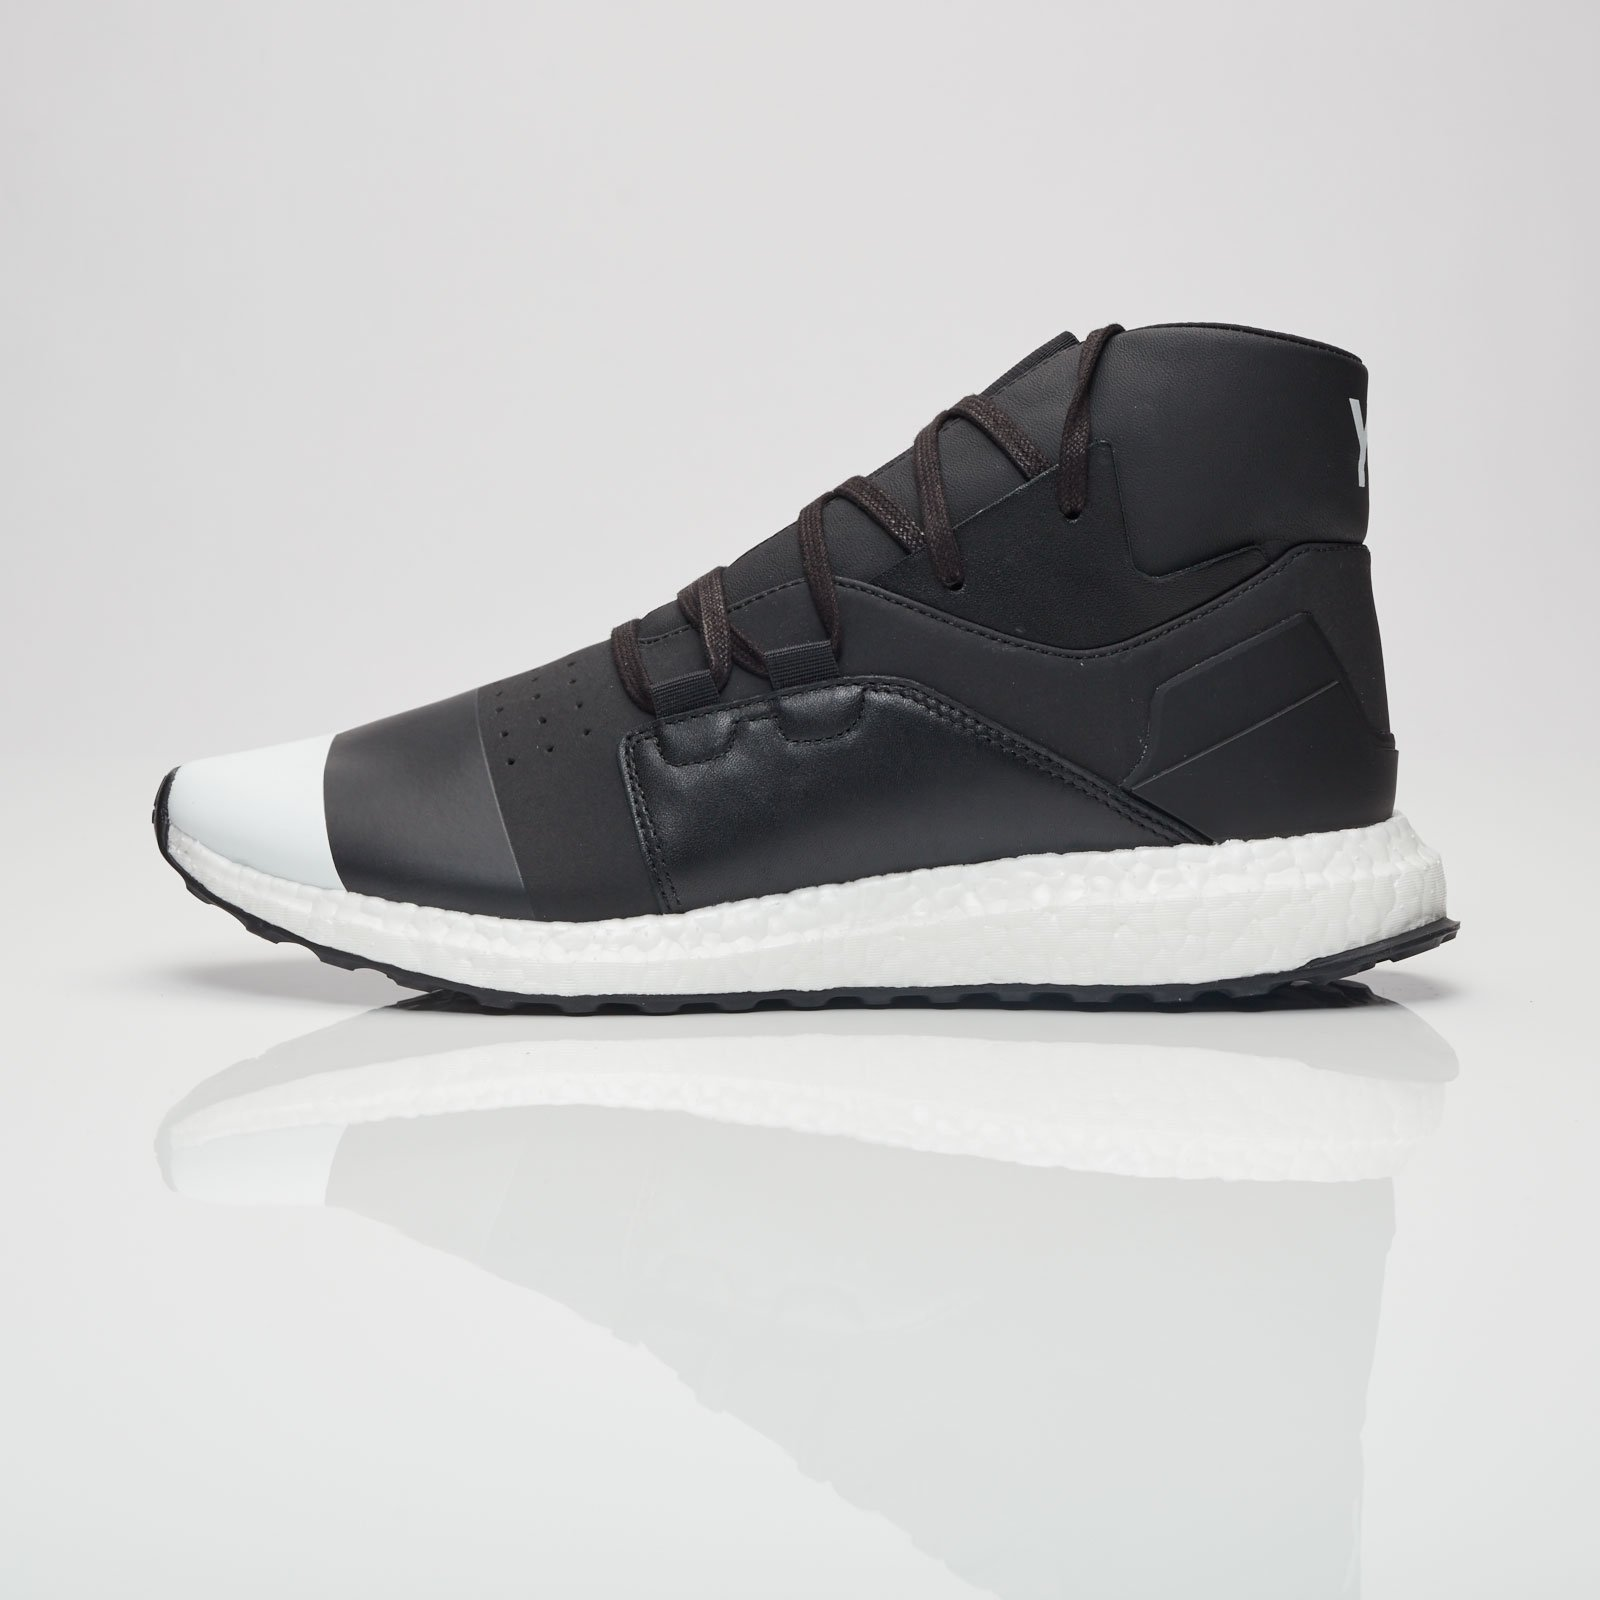 3c25dd20fa97 adidas Kozoko High - By2635 - Sneakersnstuff